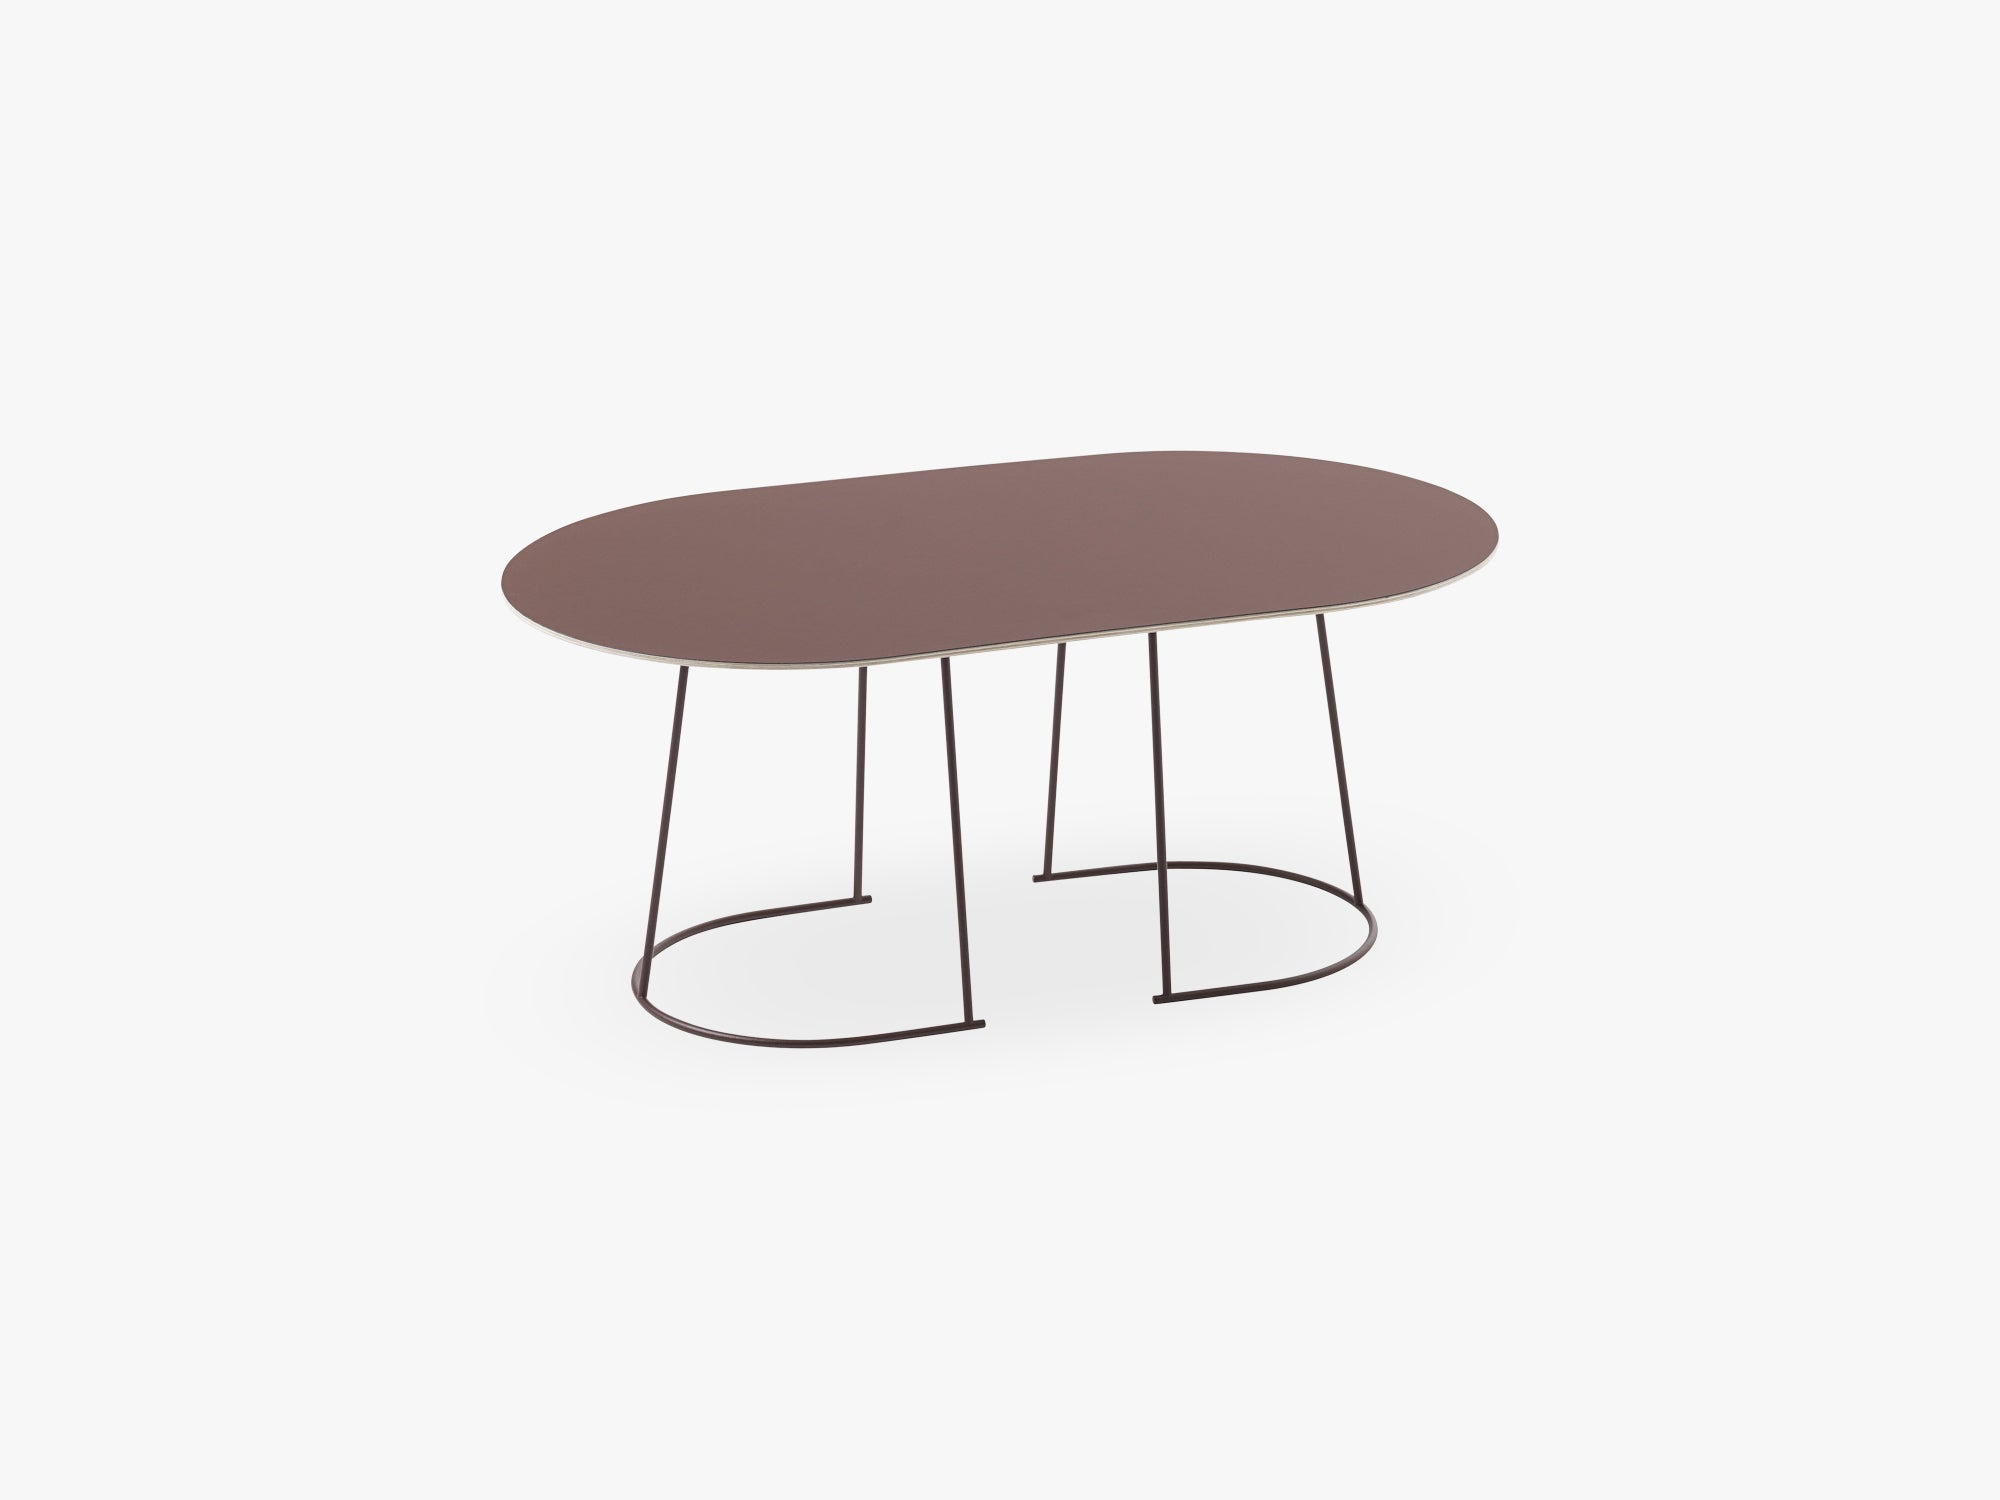 Airy Coffee Table - Medium, Plum - Nanolaminate fra Muuto